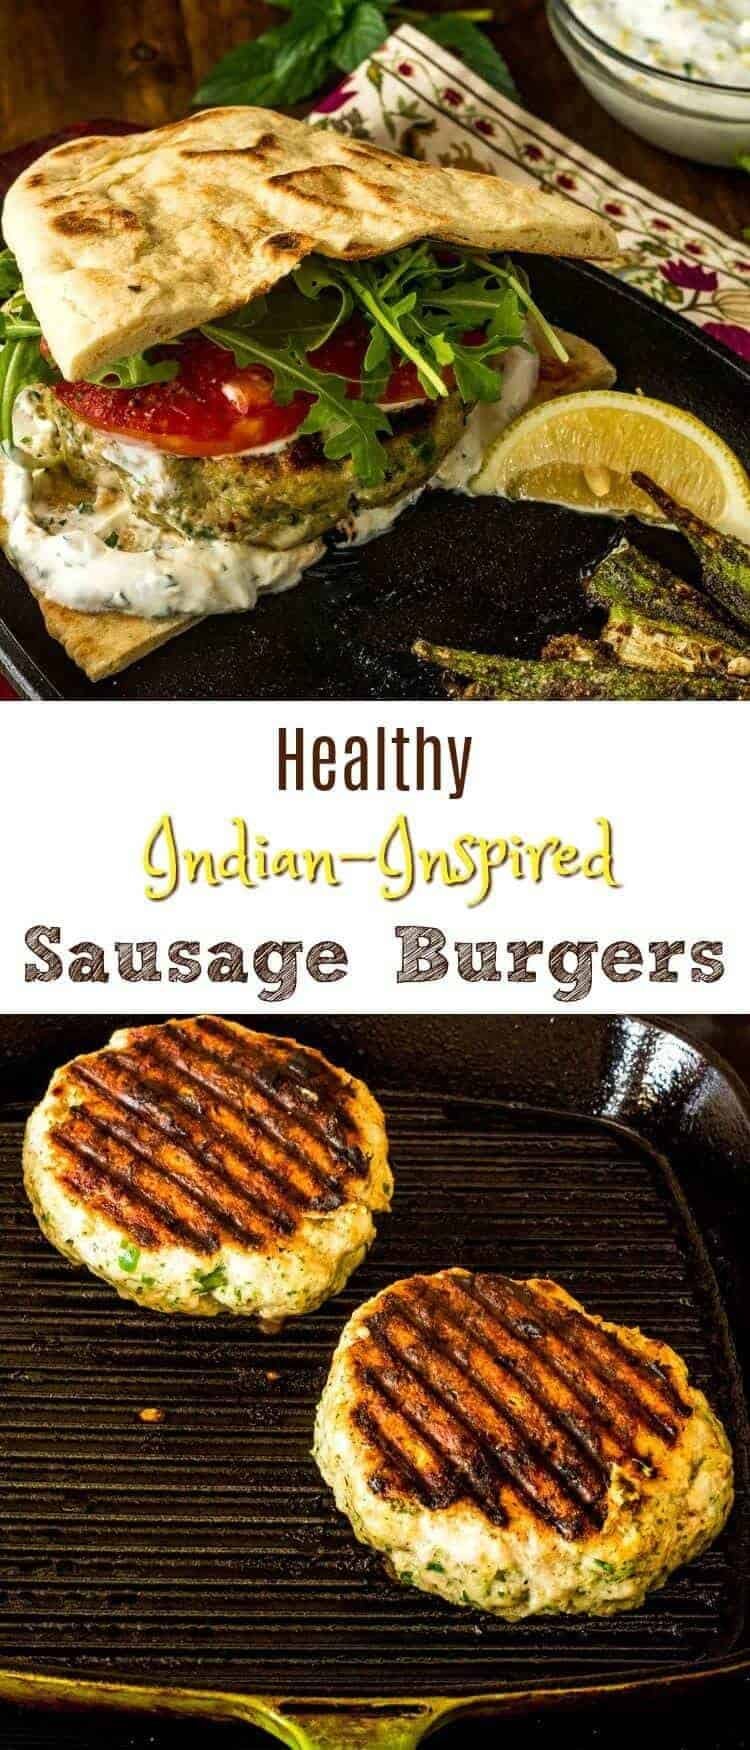 Healthy Indian-Style Sausage Burger - Bold Indian flavors - ginger, onion, garlic, masala - take humble ground chicken (turkey, beef, pork) to from bland to beautiful! Healthy Indian-Style Sausage Burger gets topped with a lemon and herb yogurt, sliced tomatoes, arugula (or other greens), and served on flatbread of your choice... #sausagemaking #healthyburgers #indianinspired